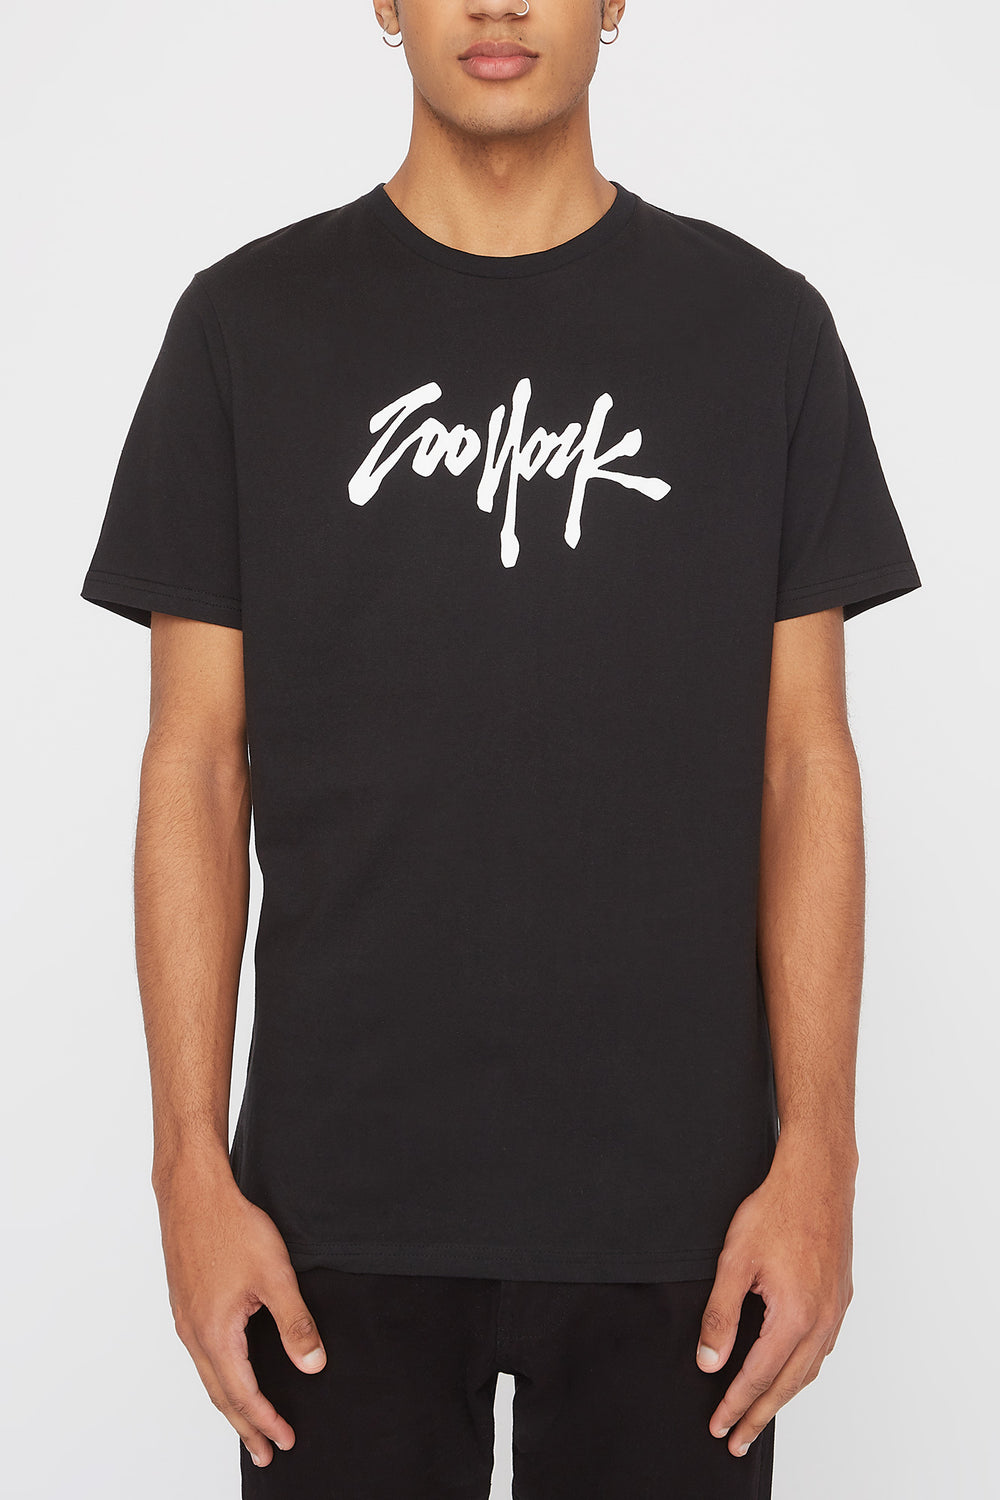 Zoo York Mens NYC 5 Boroughs T-Shirt Black